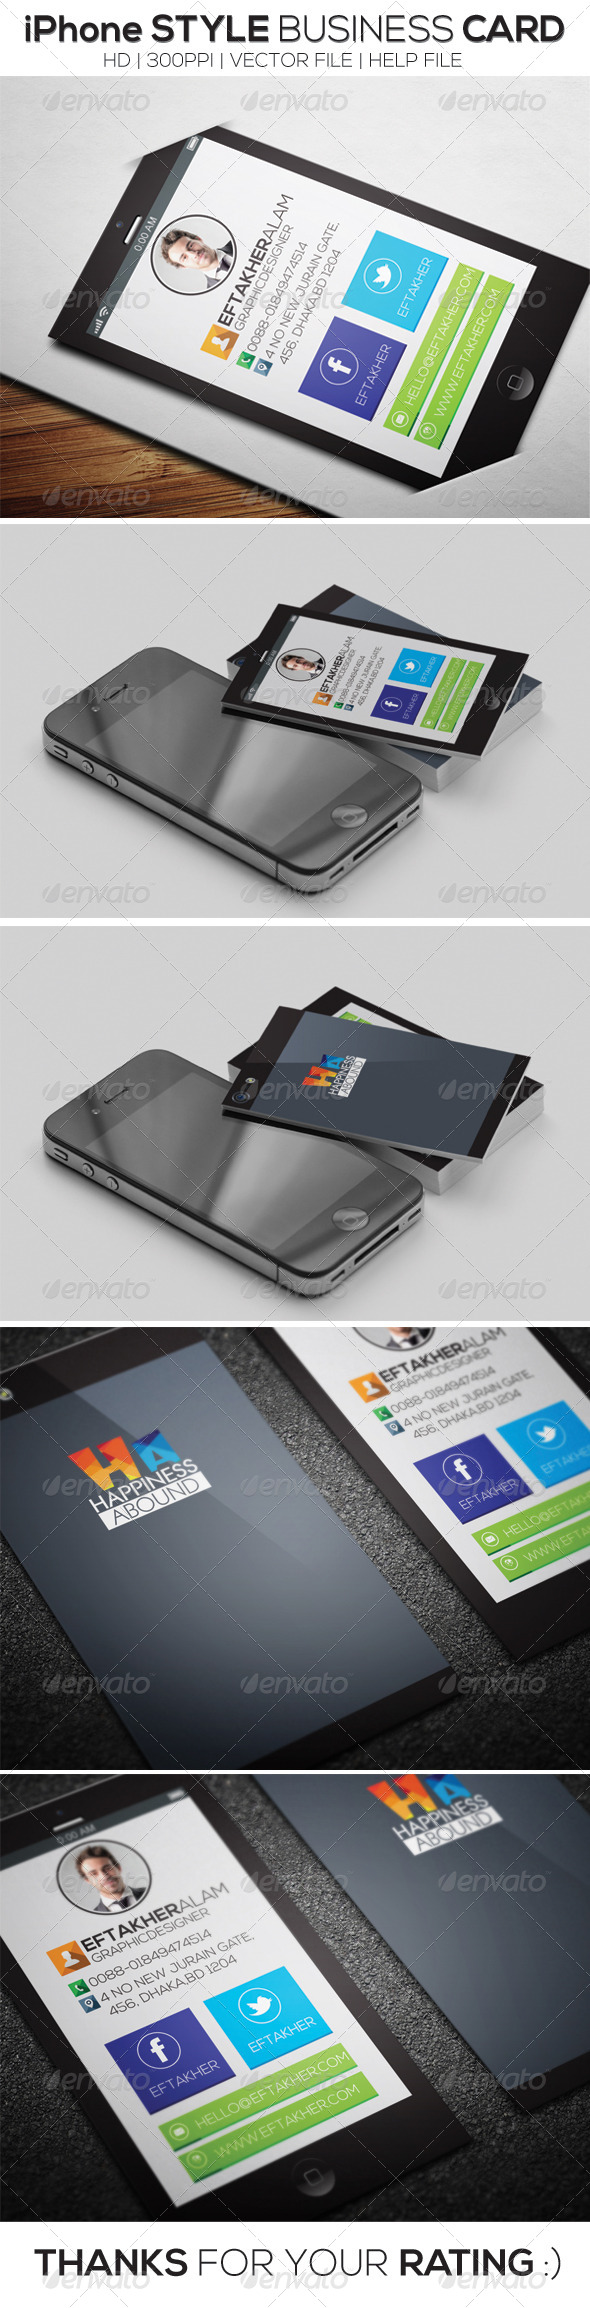 GraphicRiver iPhone Style Business Card 6421749